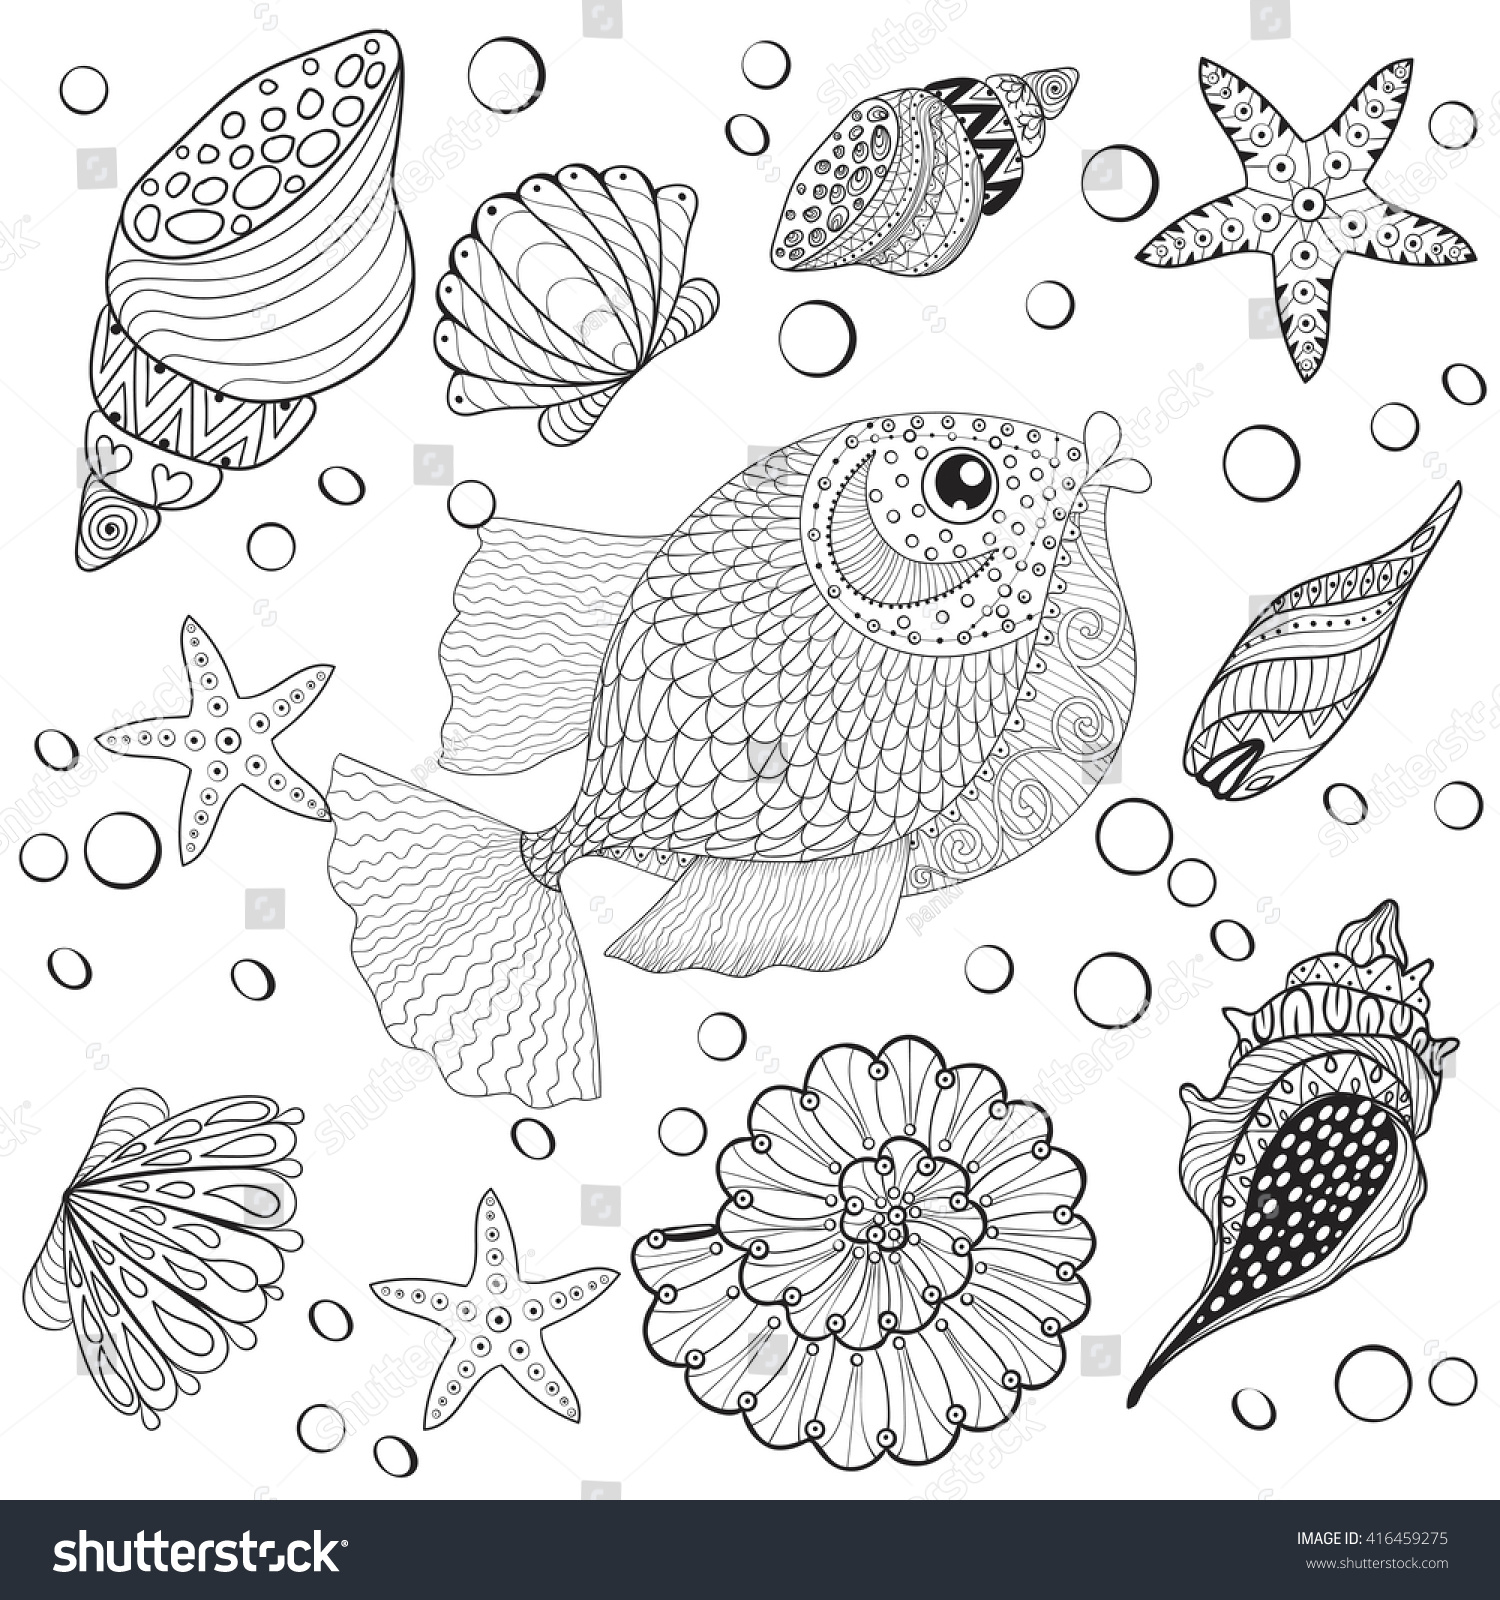 Hand Drawn Zentangle Fish Sea Shells For Adult Anti Stress Coloring Pages Post Card